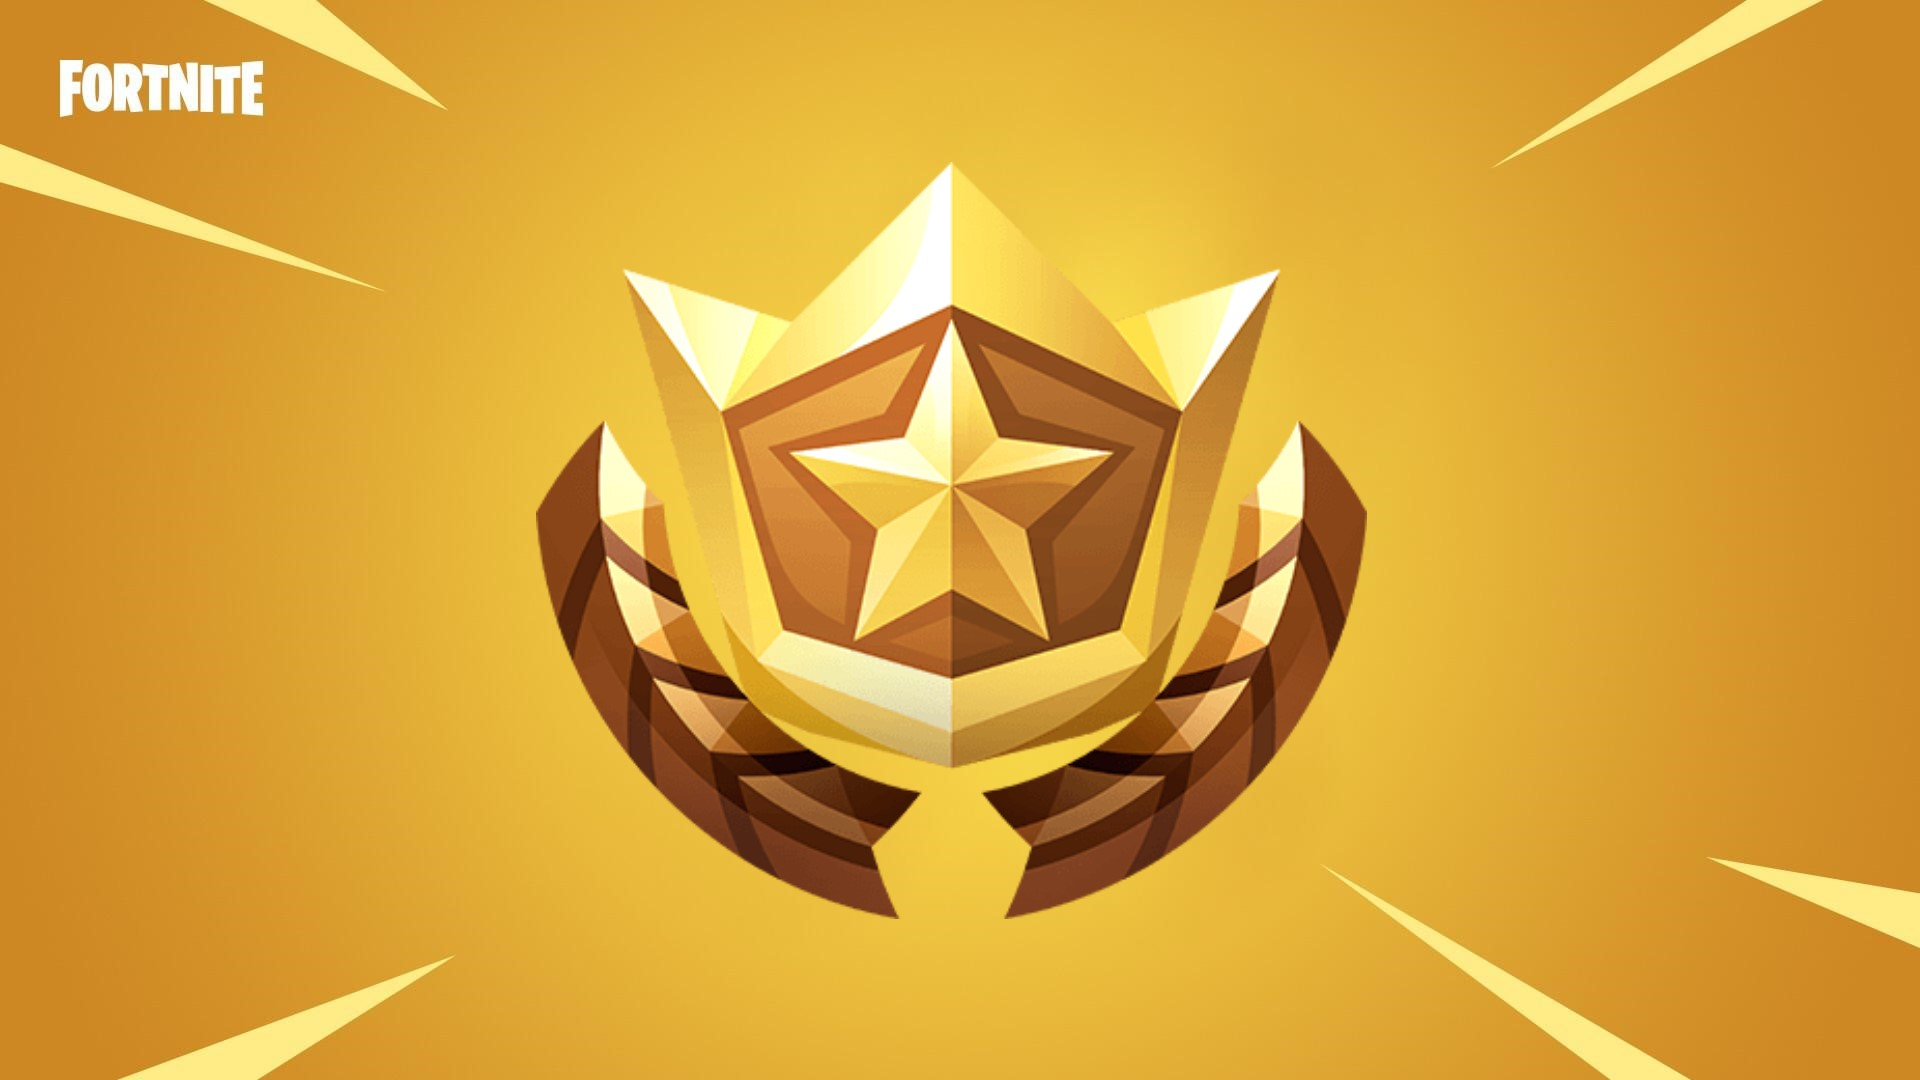 Fortnite S Week 10 Secret Battle Star Location And Existence Are